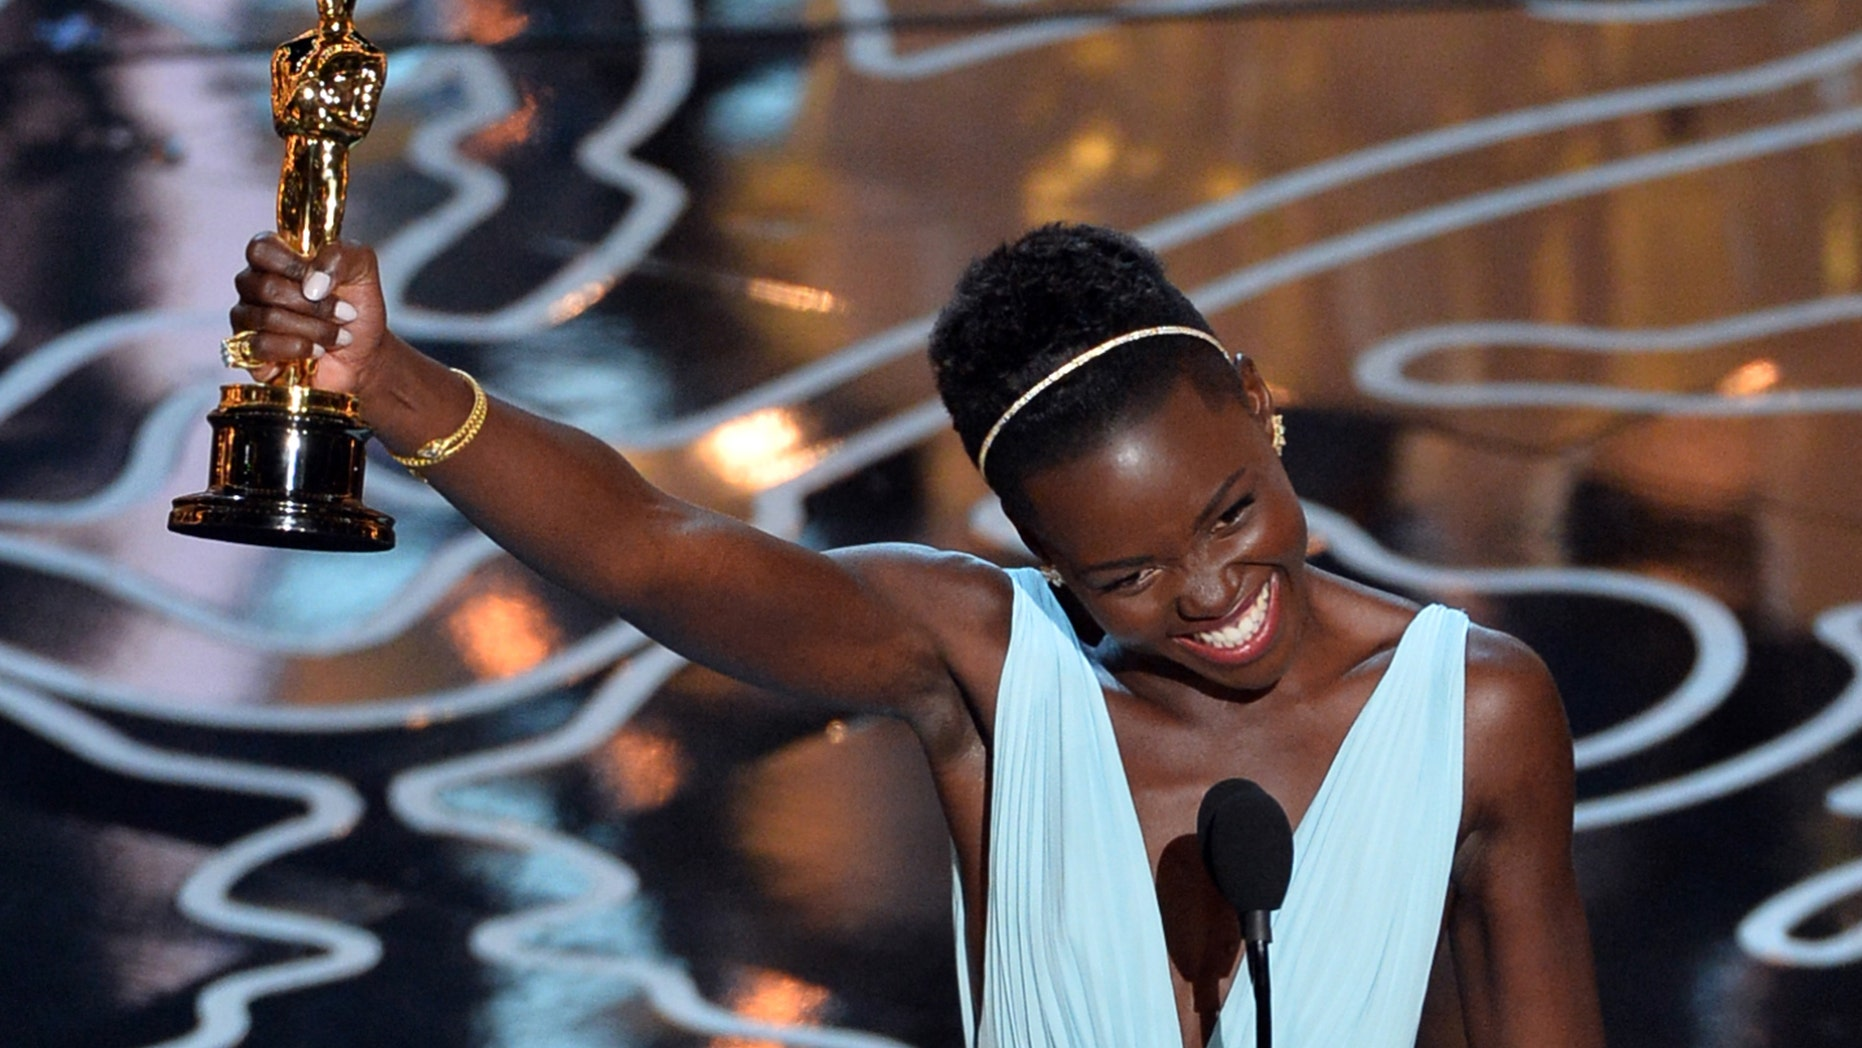 HOLLYWOOD, CA - MARCH 02:  Actress Lupita Nyong'o accepts the Best Performance by an Actress in a Supporting Role award for '12 Years a Slave' onstage during the Oscars at the Dolby Theatre on March 2, 2014 in Hollywood, California.  (Photo by Kevin Winter/Getty Images)